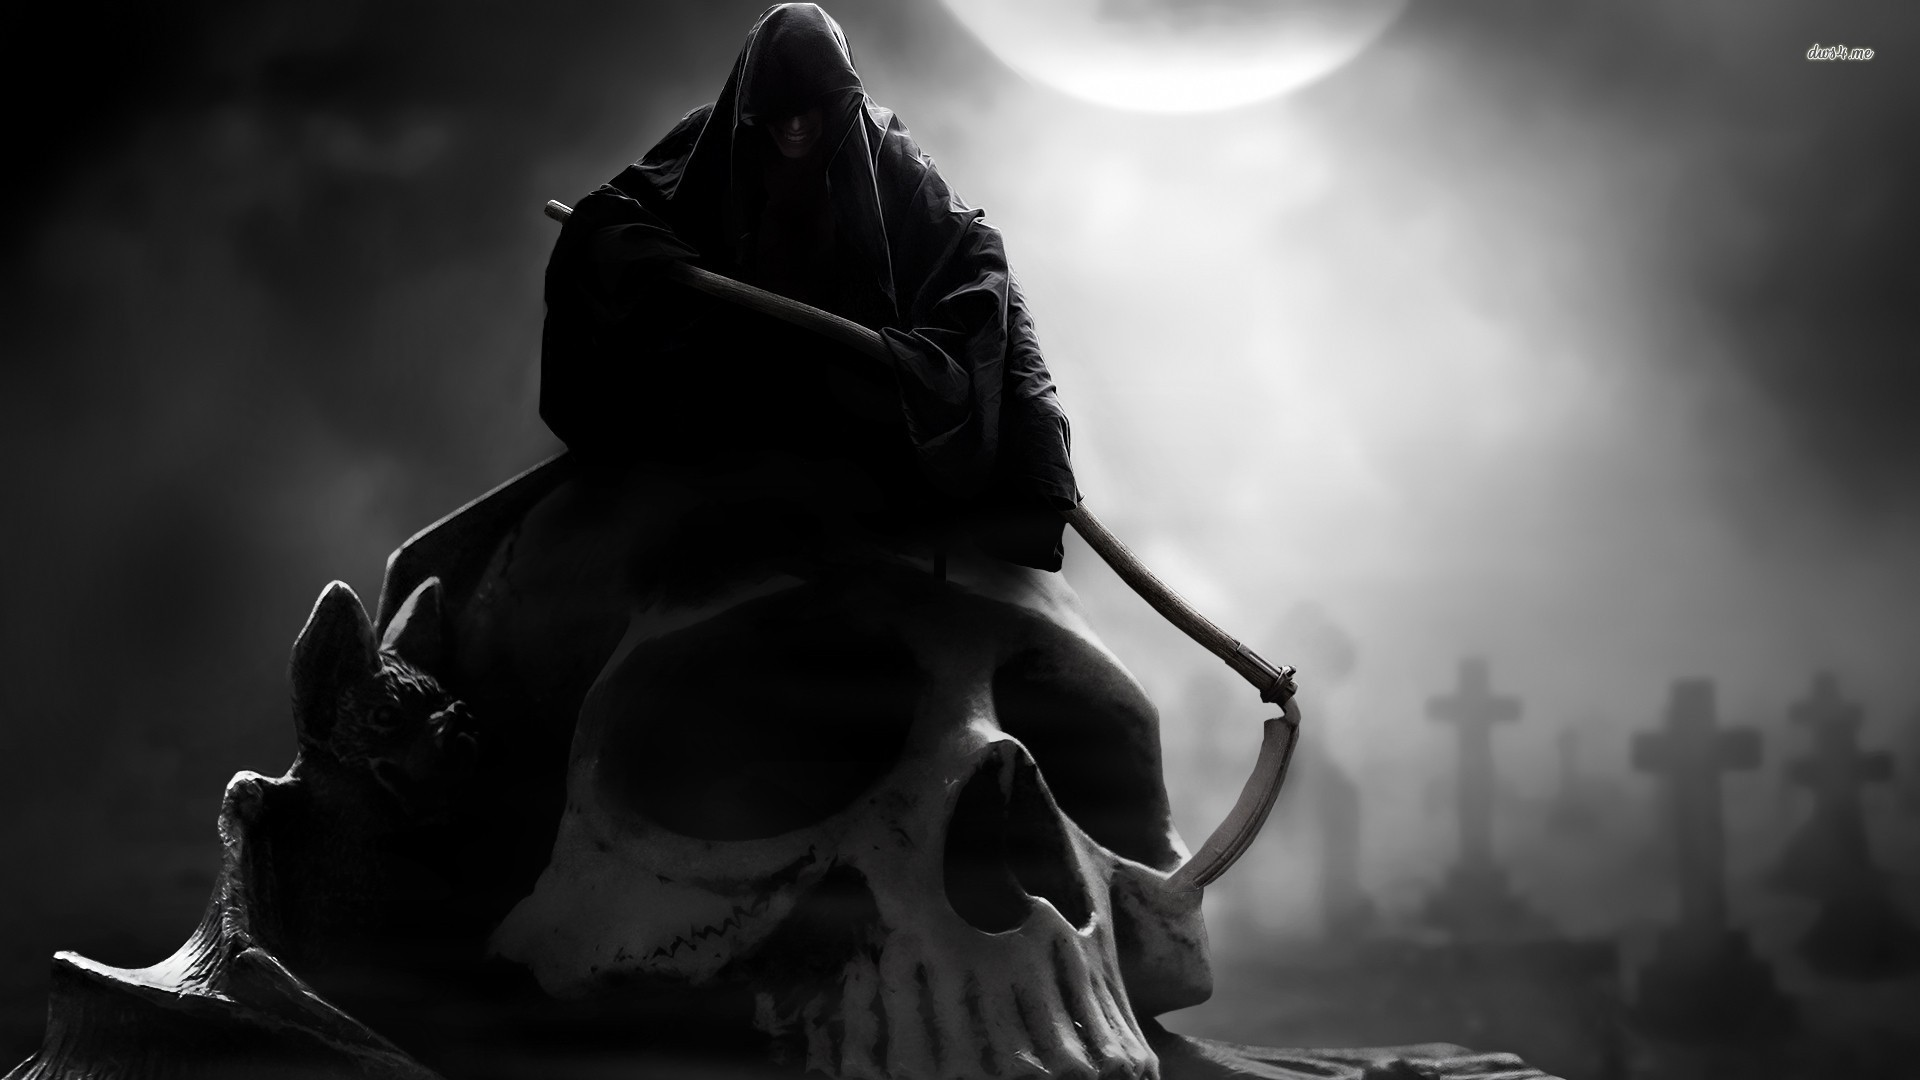 Grim Reaper HD Wallpapers  Backgrounds  Wallpaper  1920x1080